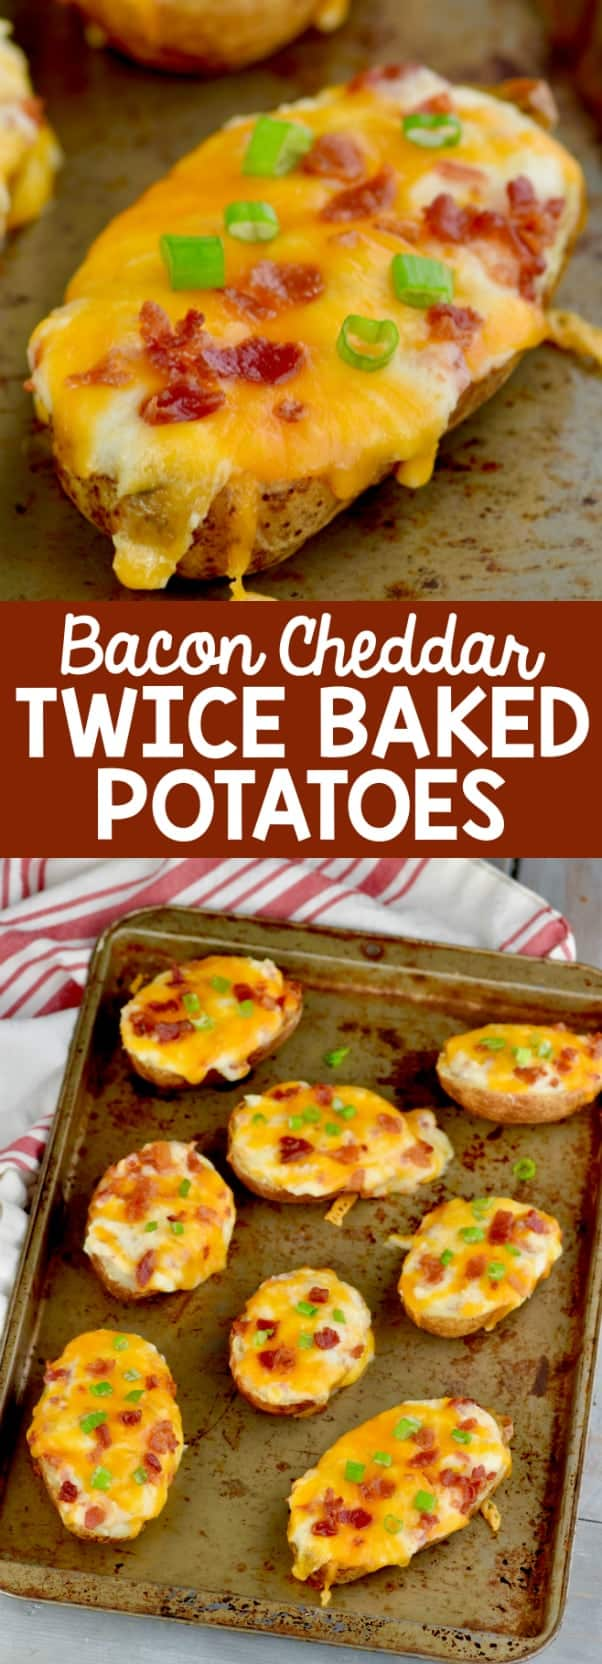 This Bacon Cheddar Twice Baked Potato Recipe is easy to make and absolutely delicious.  Loaded with all of your favorite flavors, these could make a meal on their own.